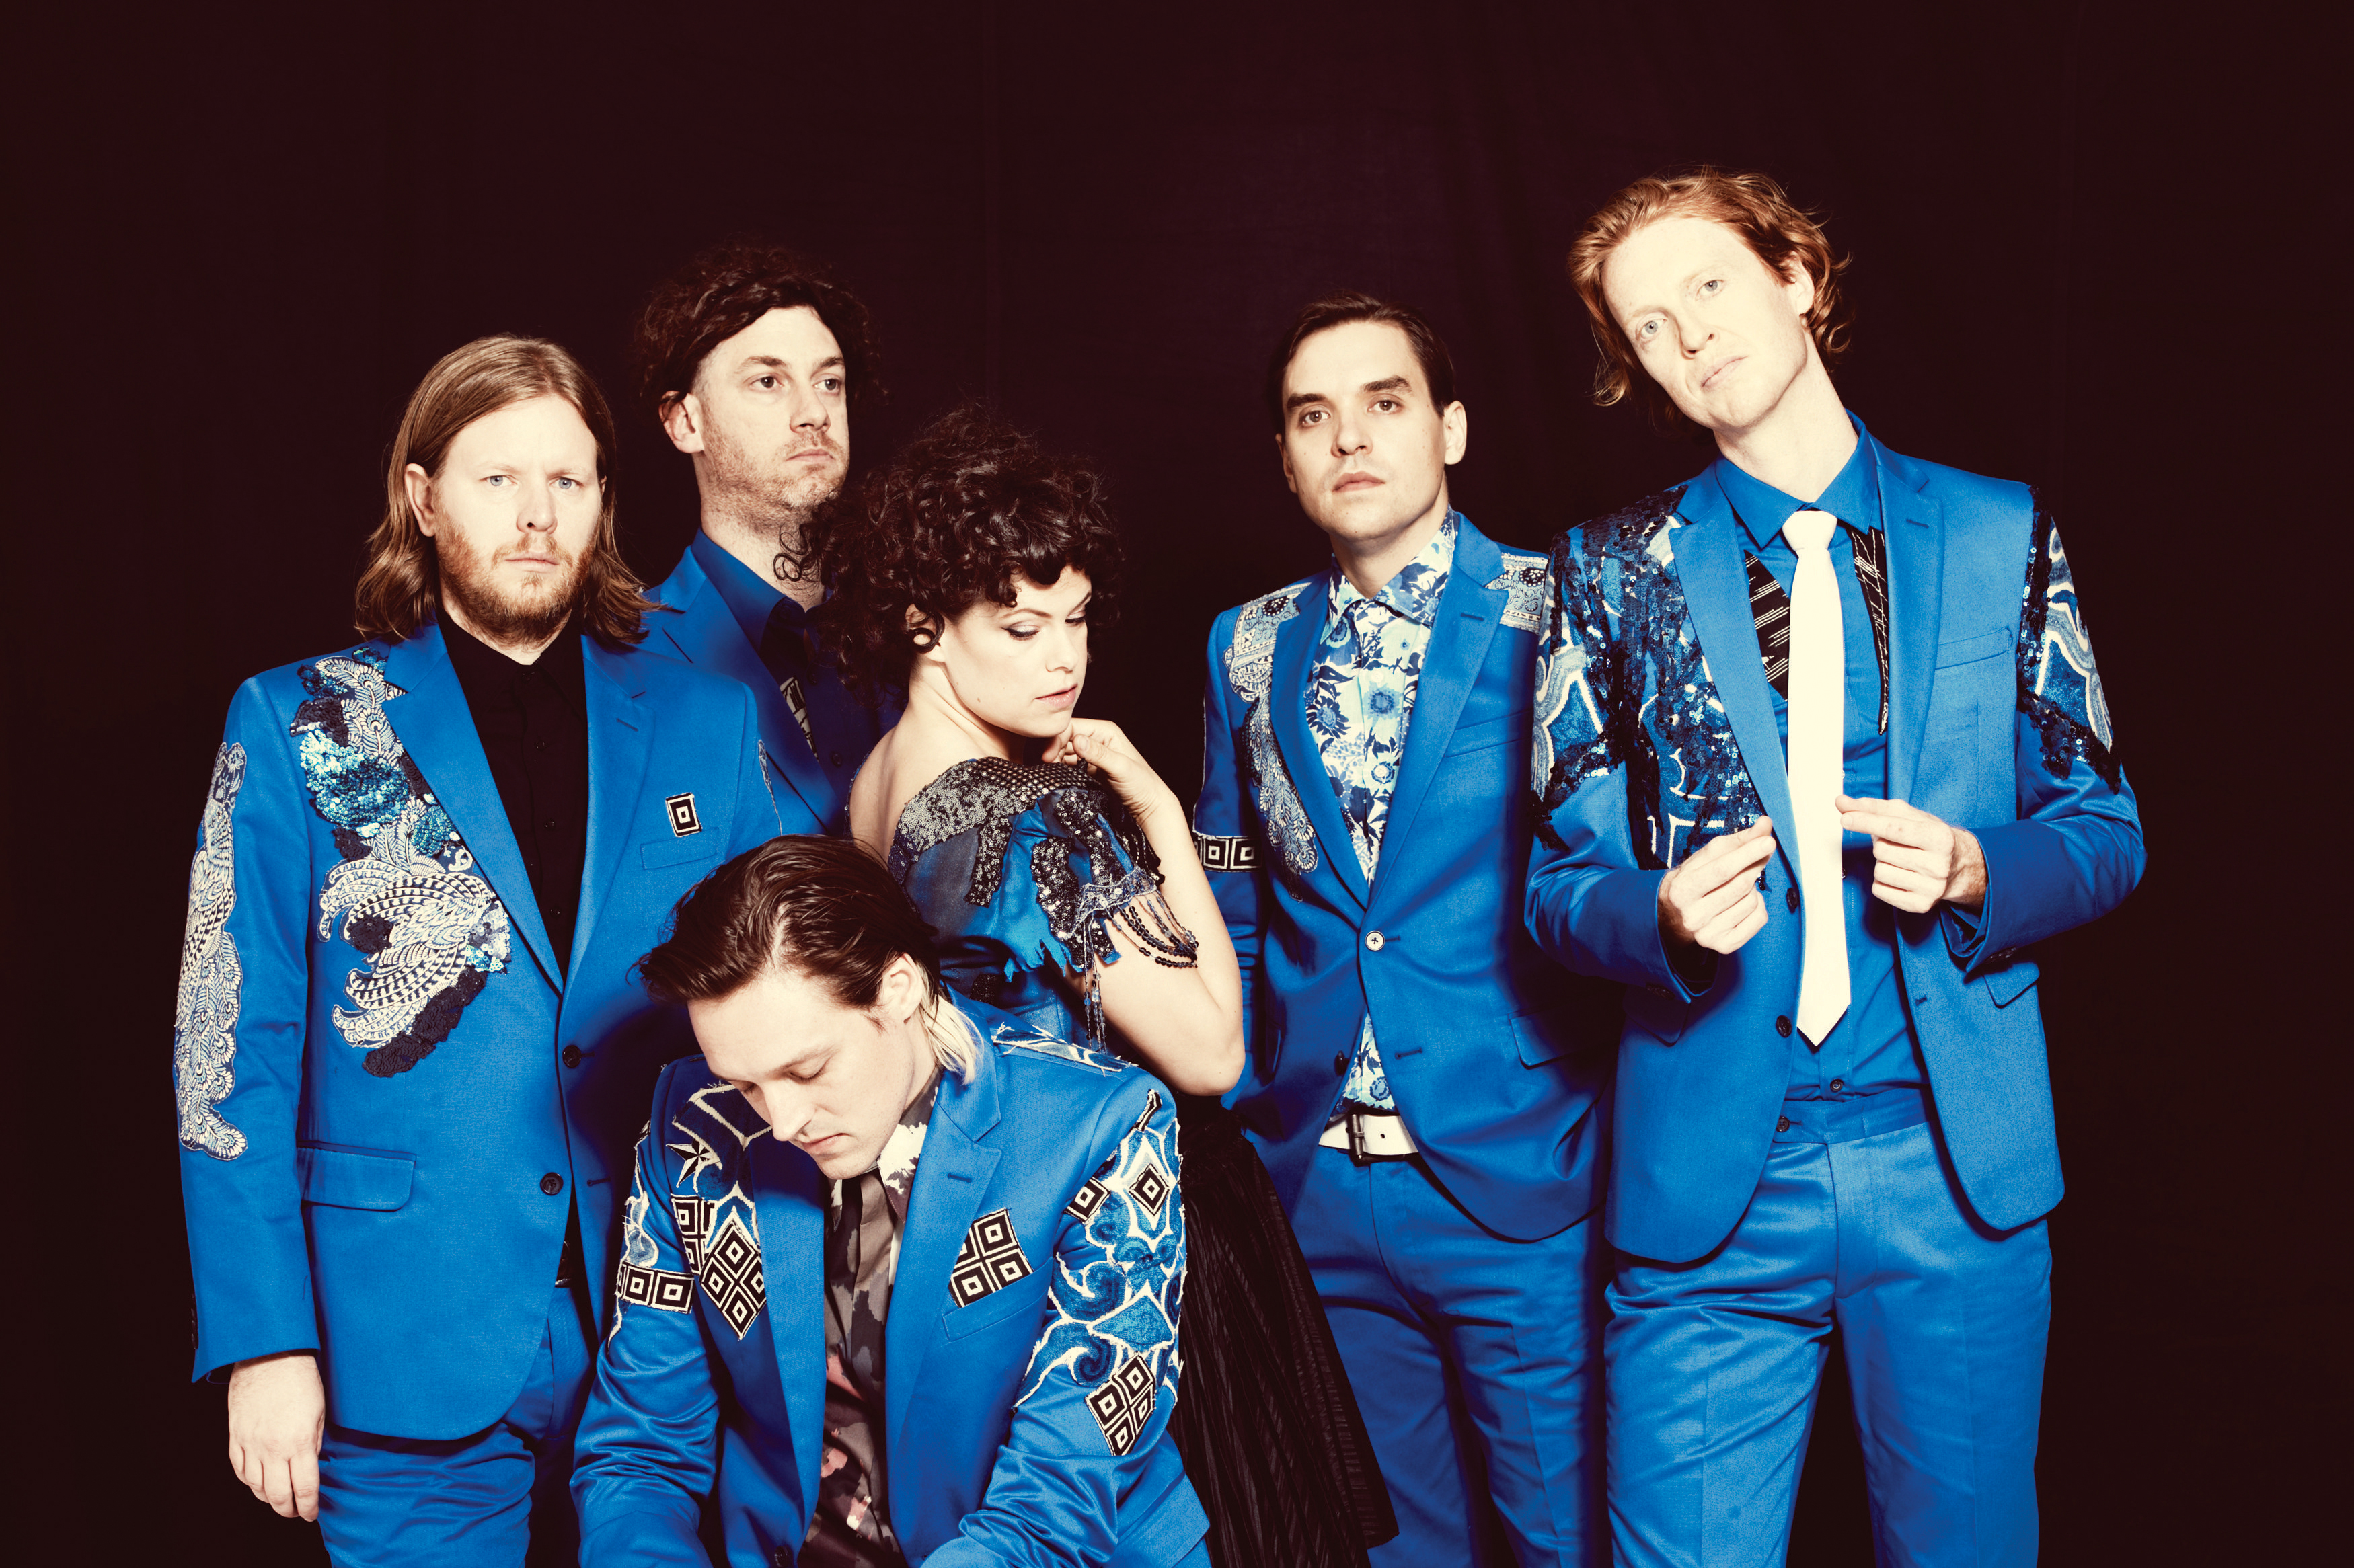 Arcade Fire Backgrounds on Wallpapers Vista